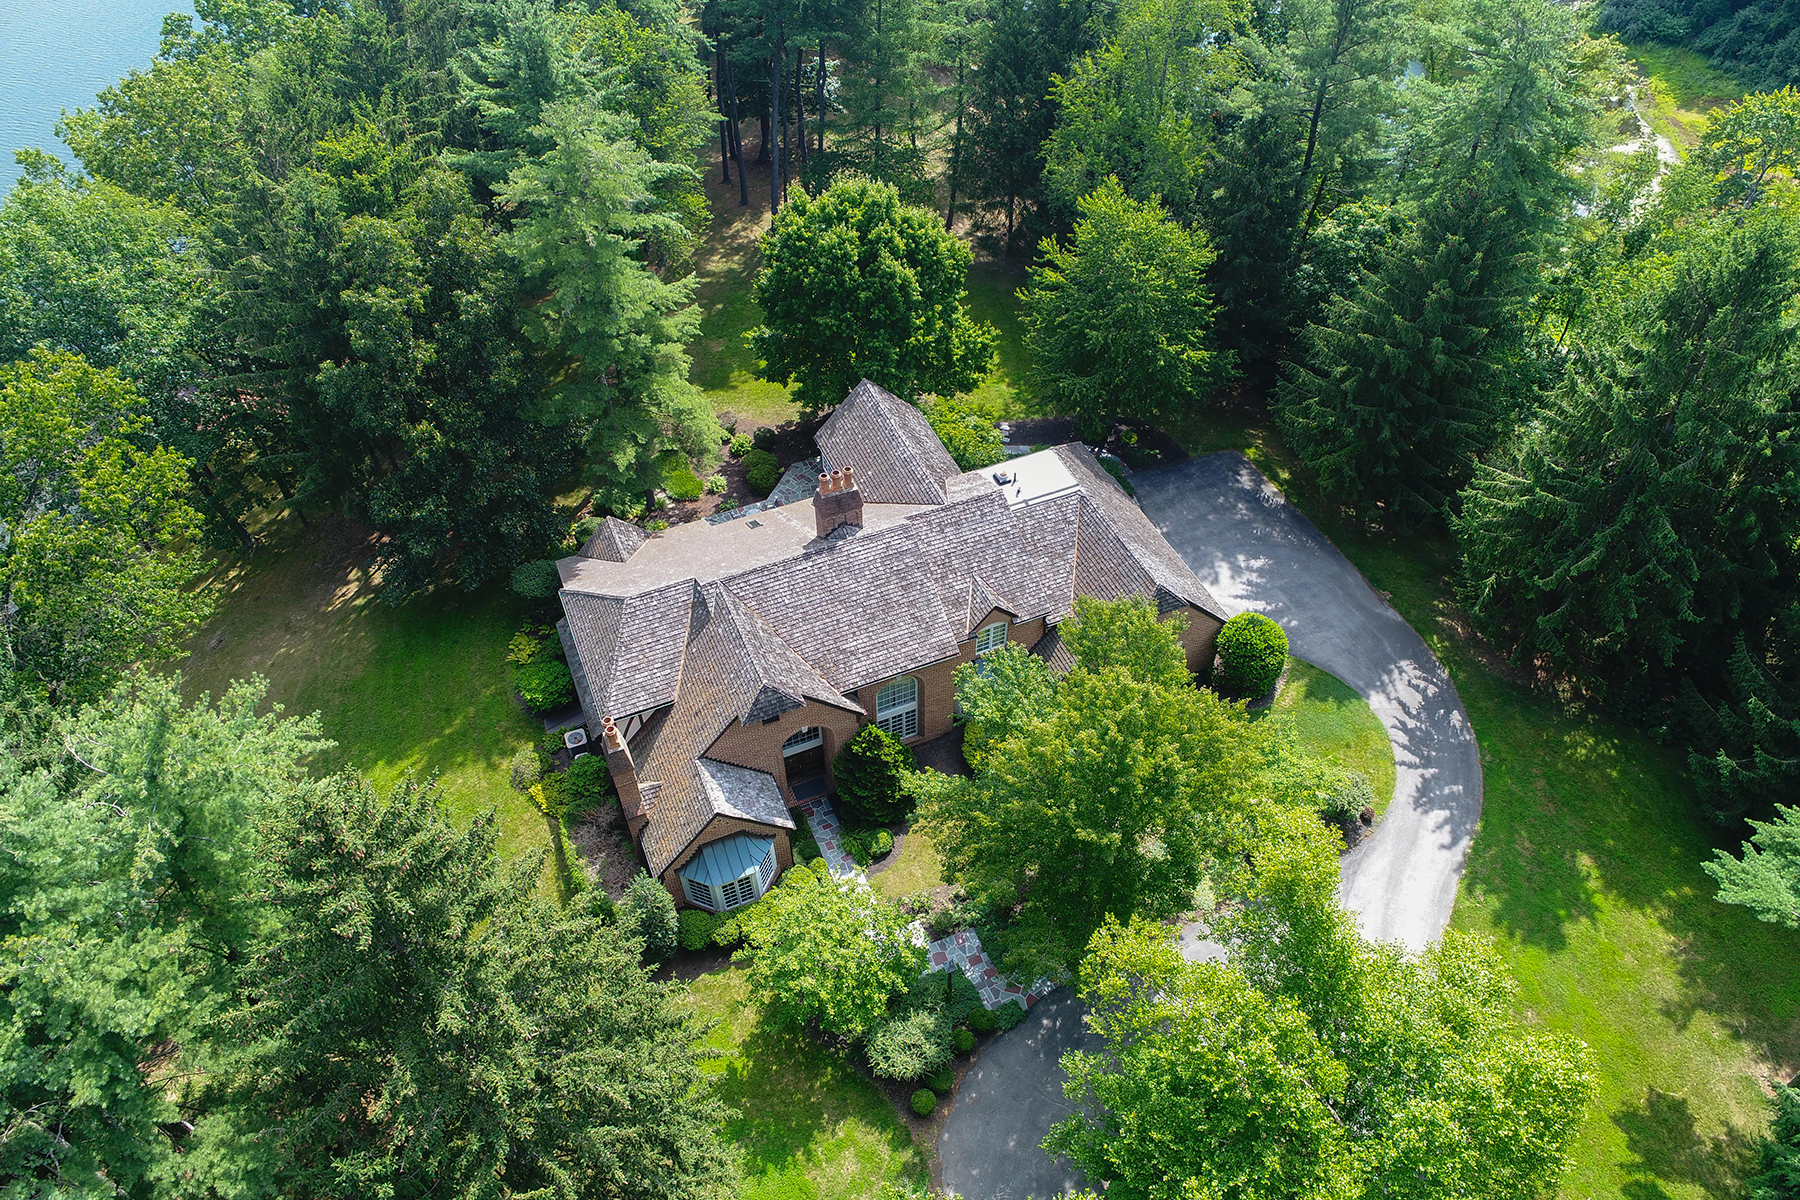 Single Family Home for Sale at 158 Springhouse Lane Spring Grove, Pennsylvania 17362 United States